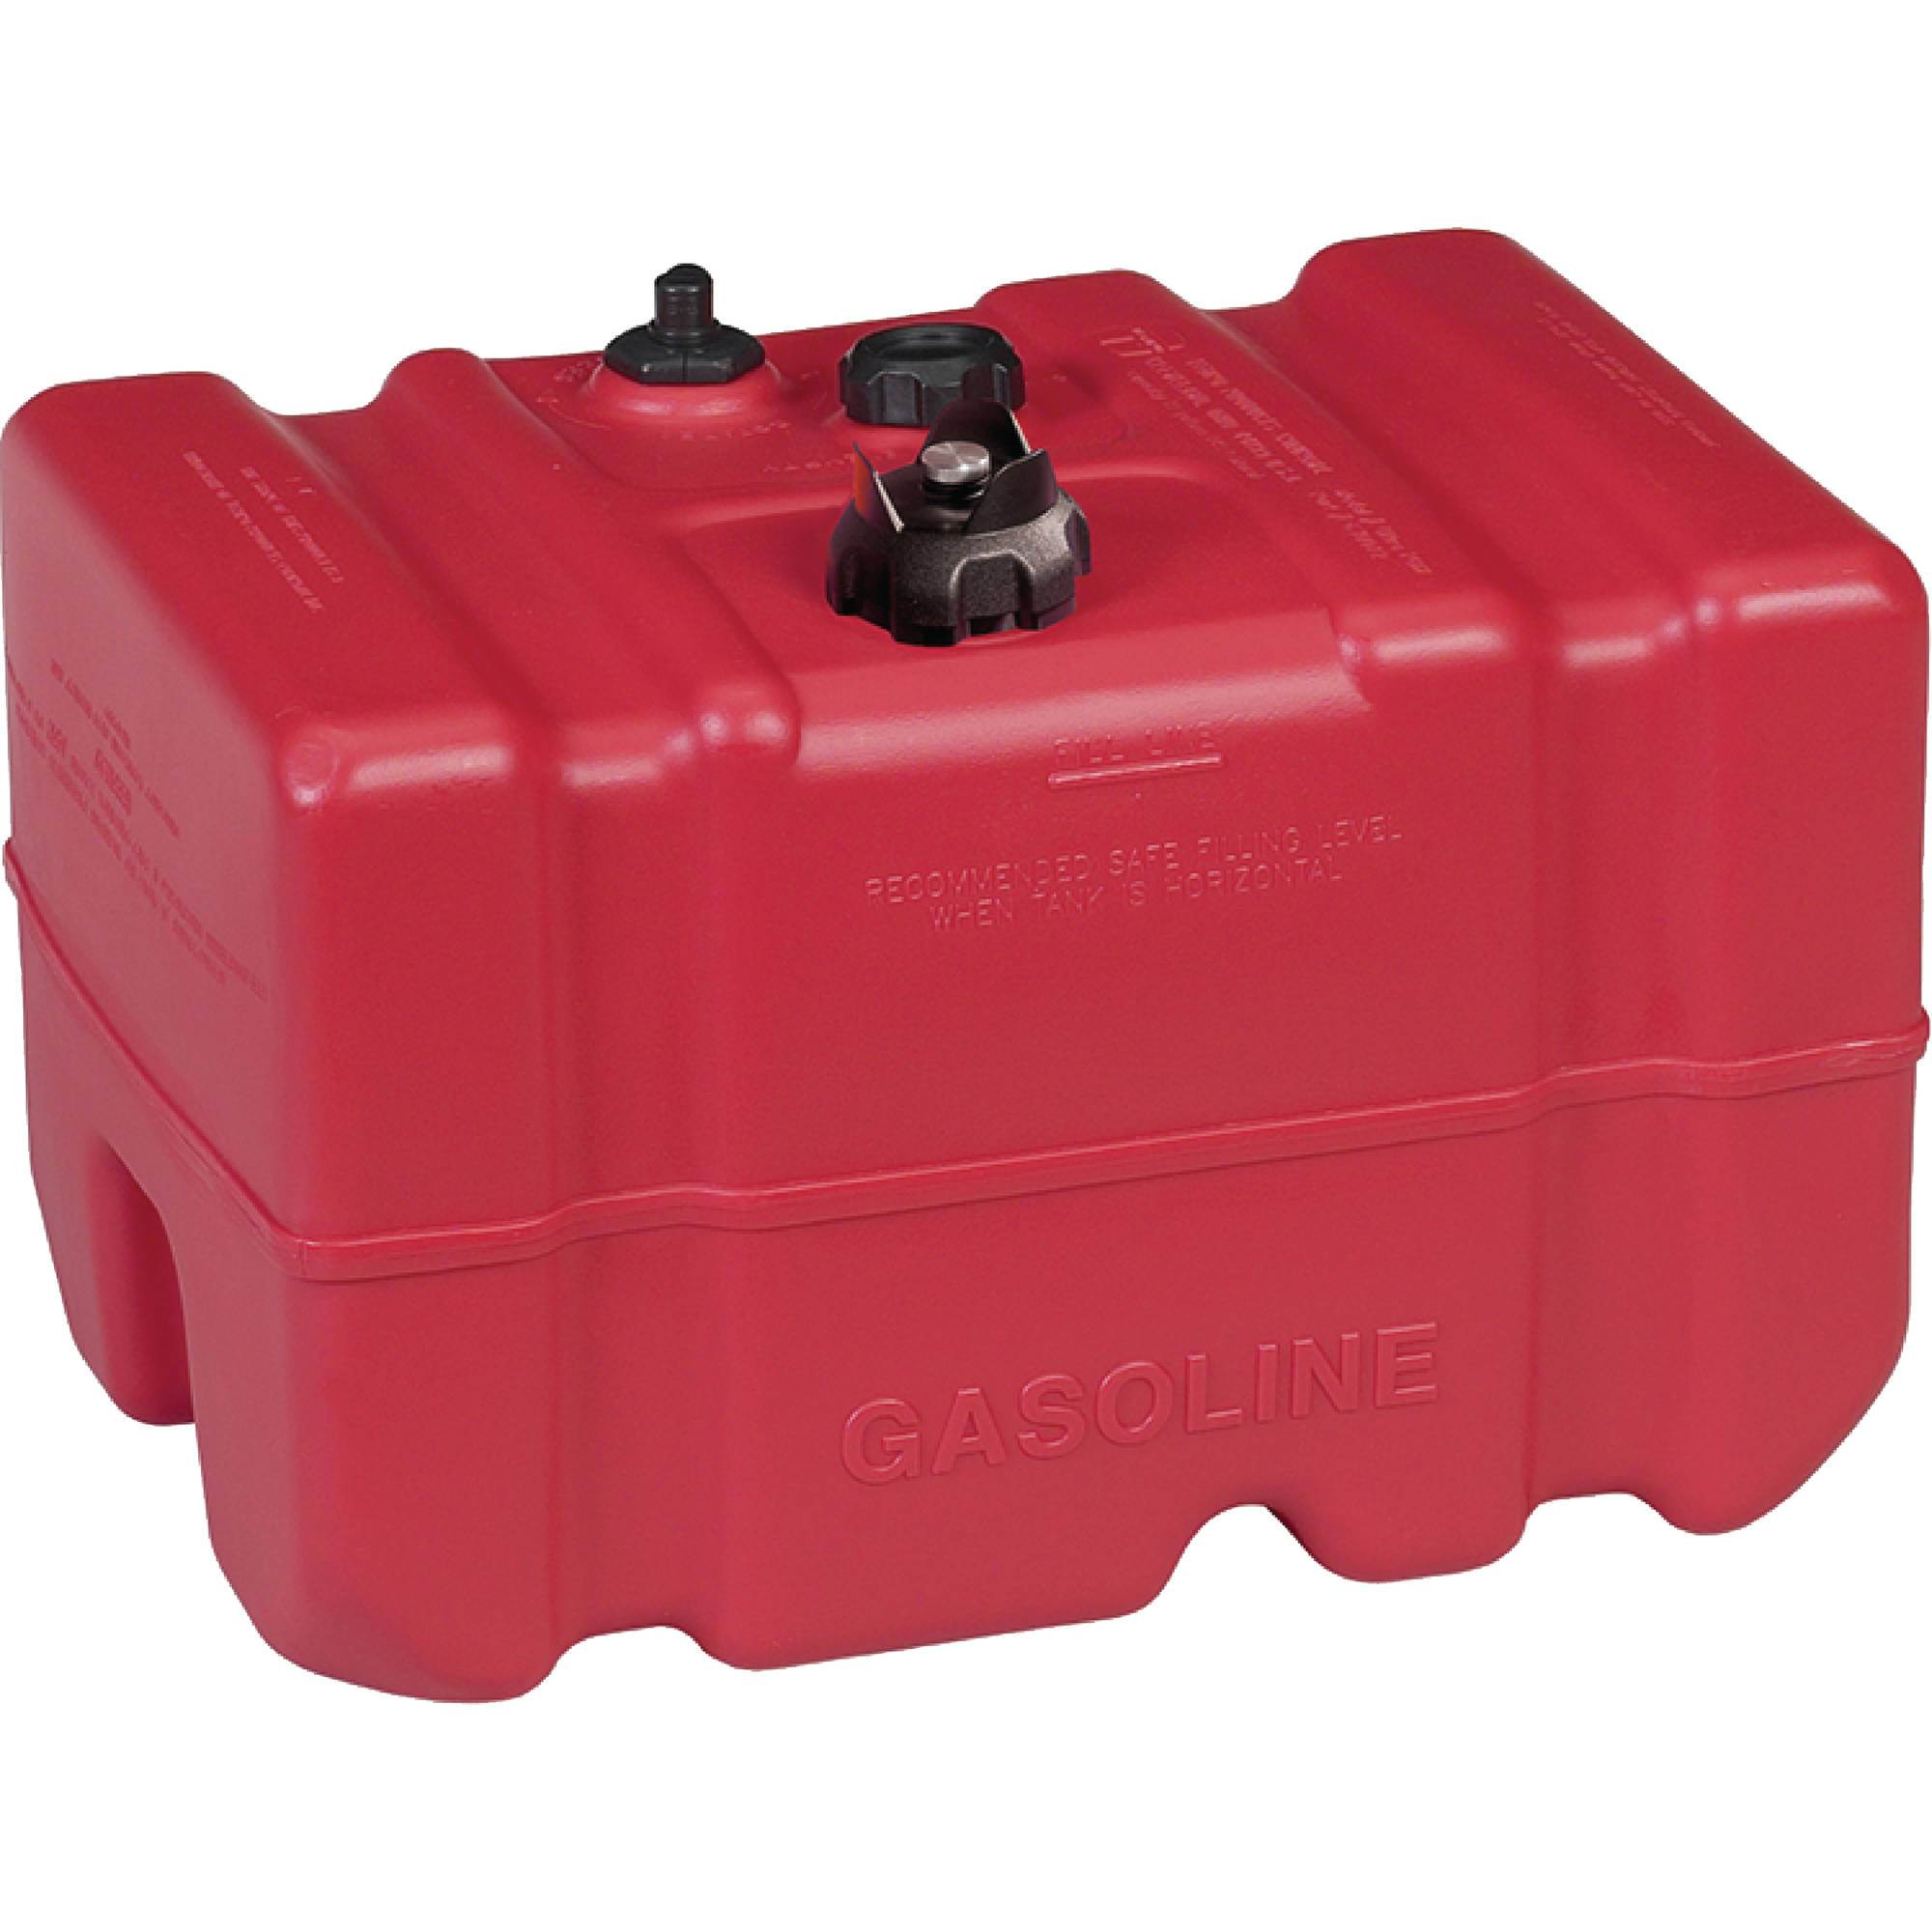 """Moeller Low Perm Certified Fuel Tank 12 Gallon with 1/4"""" Fuel Pick-Up Adapter and Mechanical Direct Sight Gauge"""